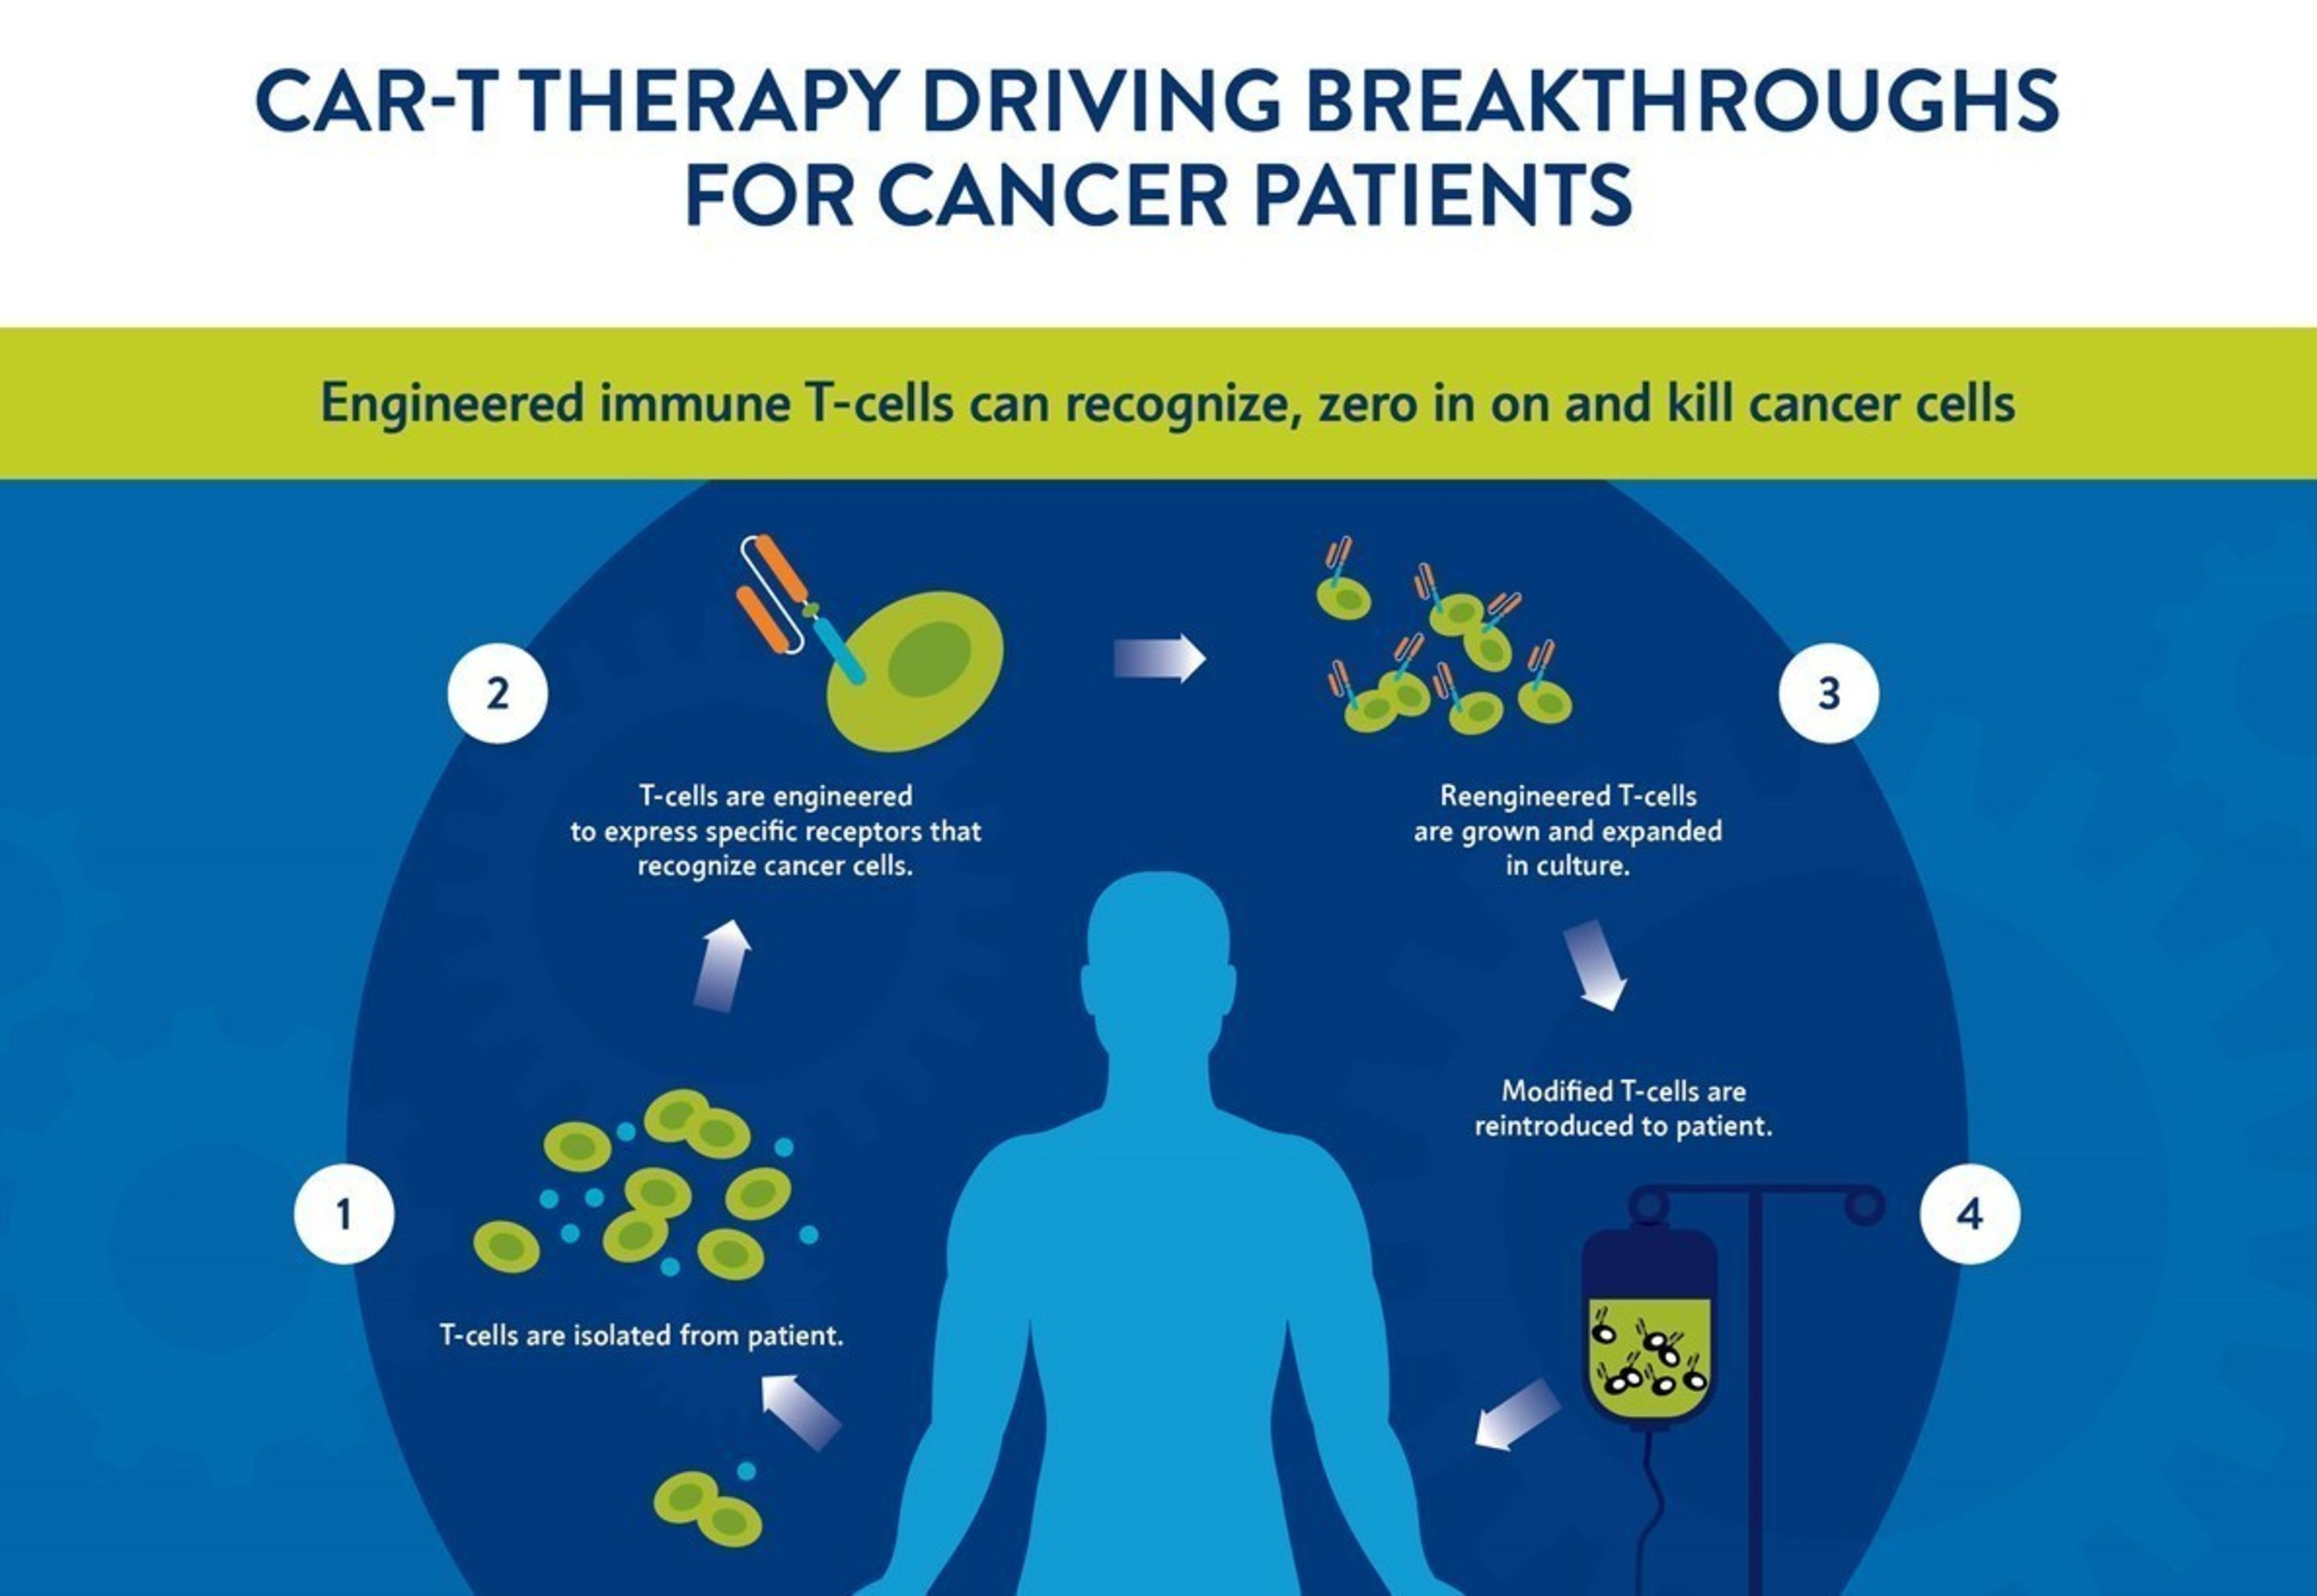 Engineered immune T-cells can recognize, zero in on and kill cancer cells.